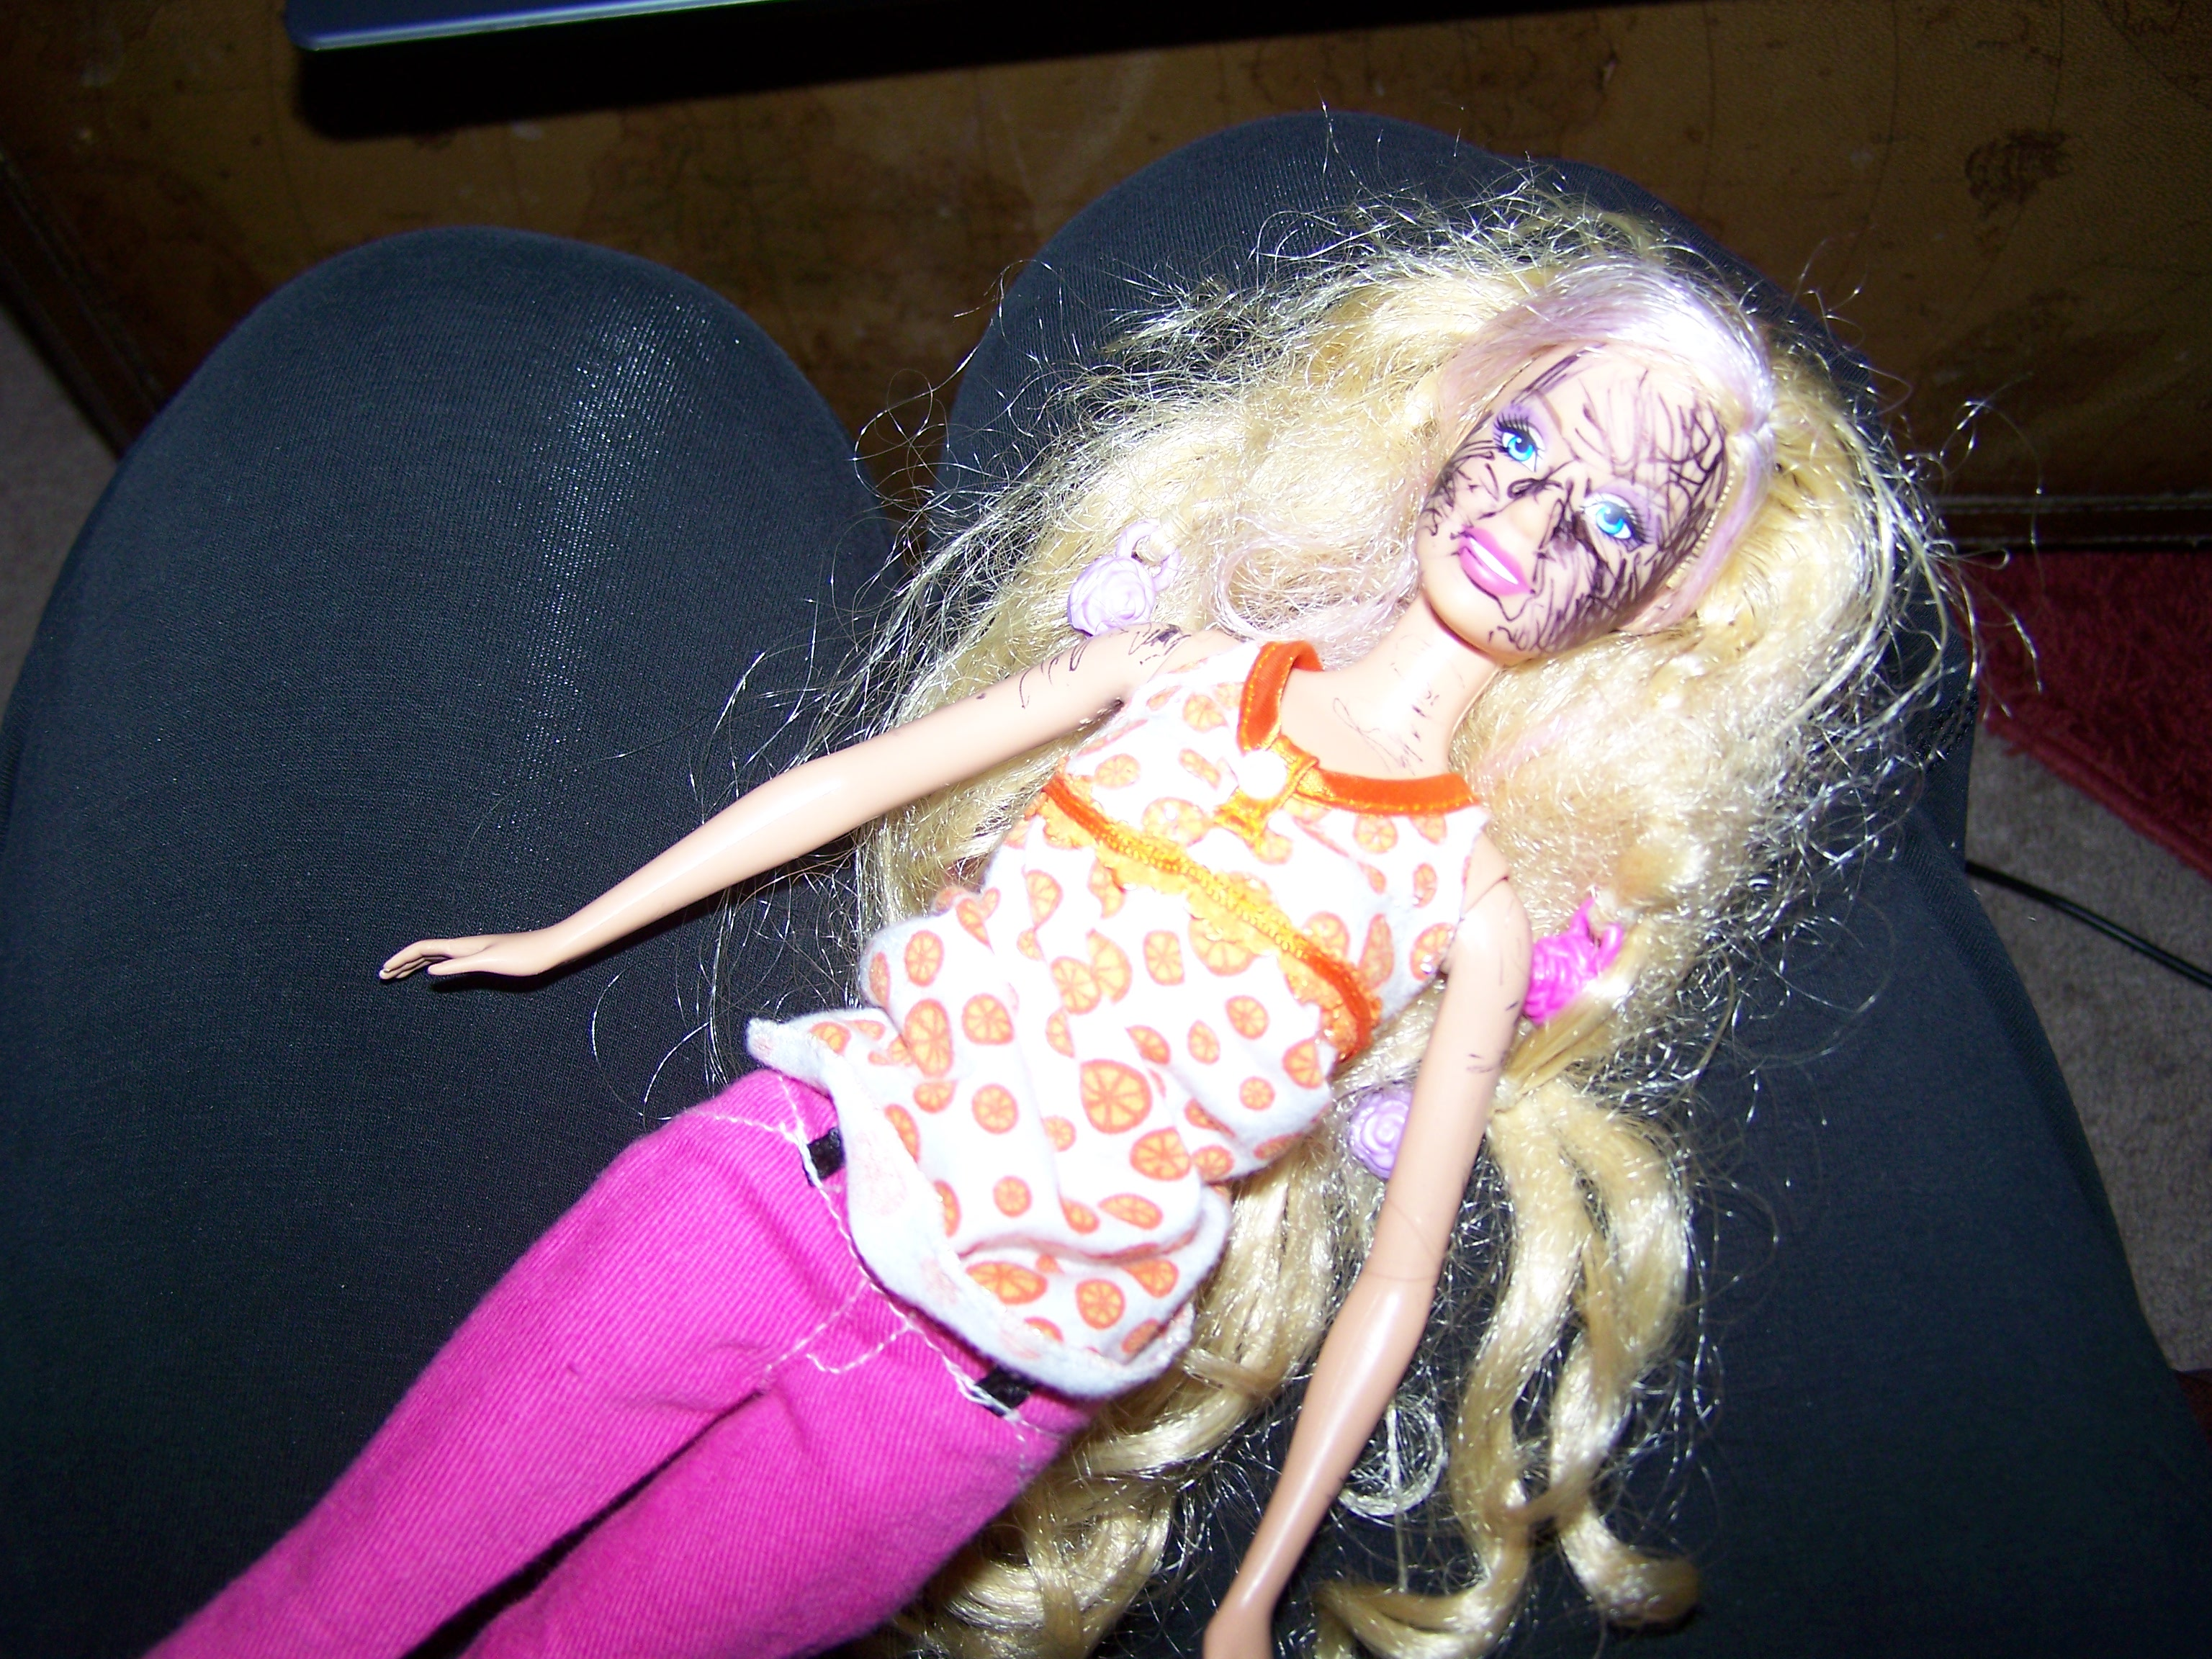 Remove Pen Marks on Barbies Face